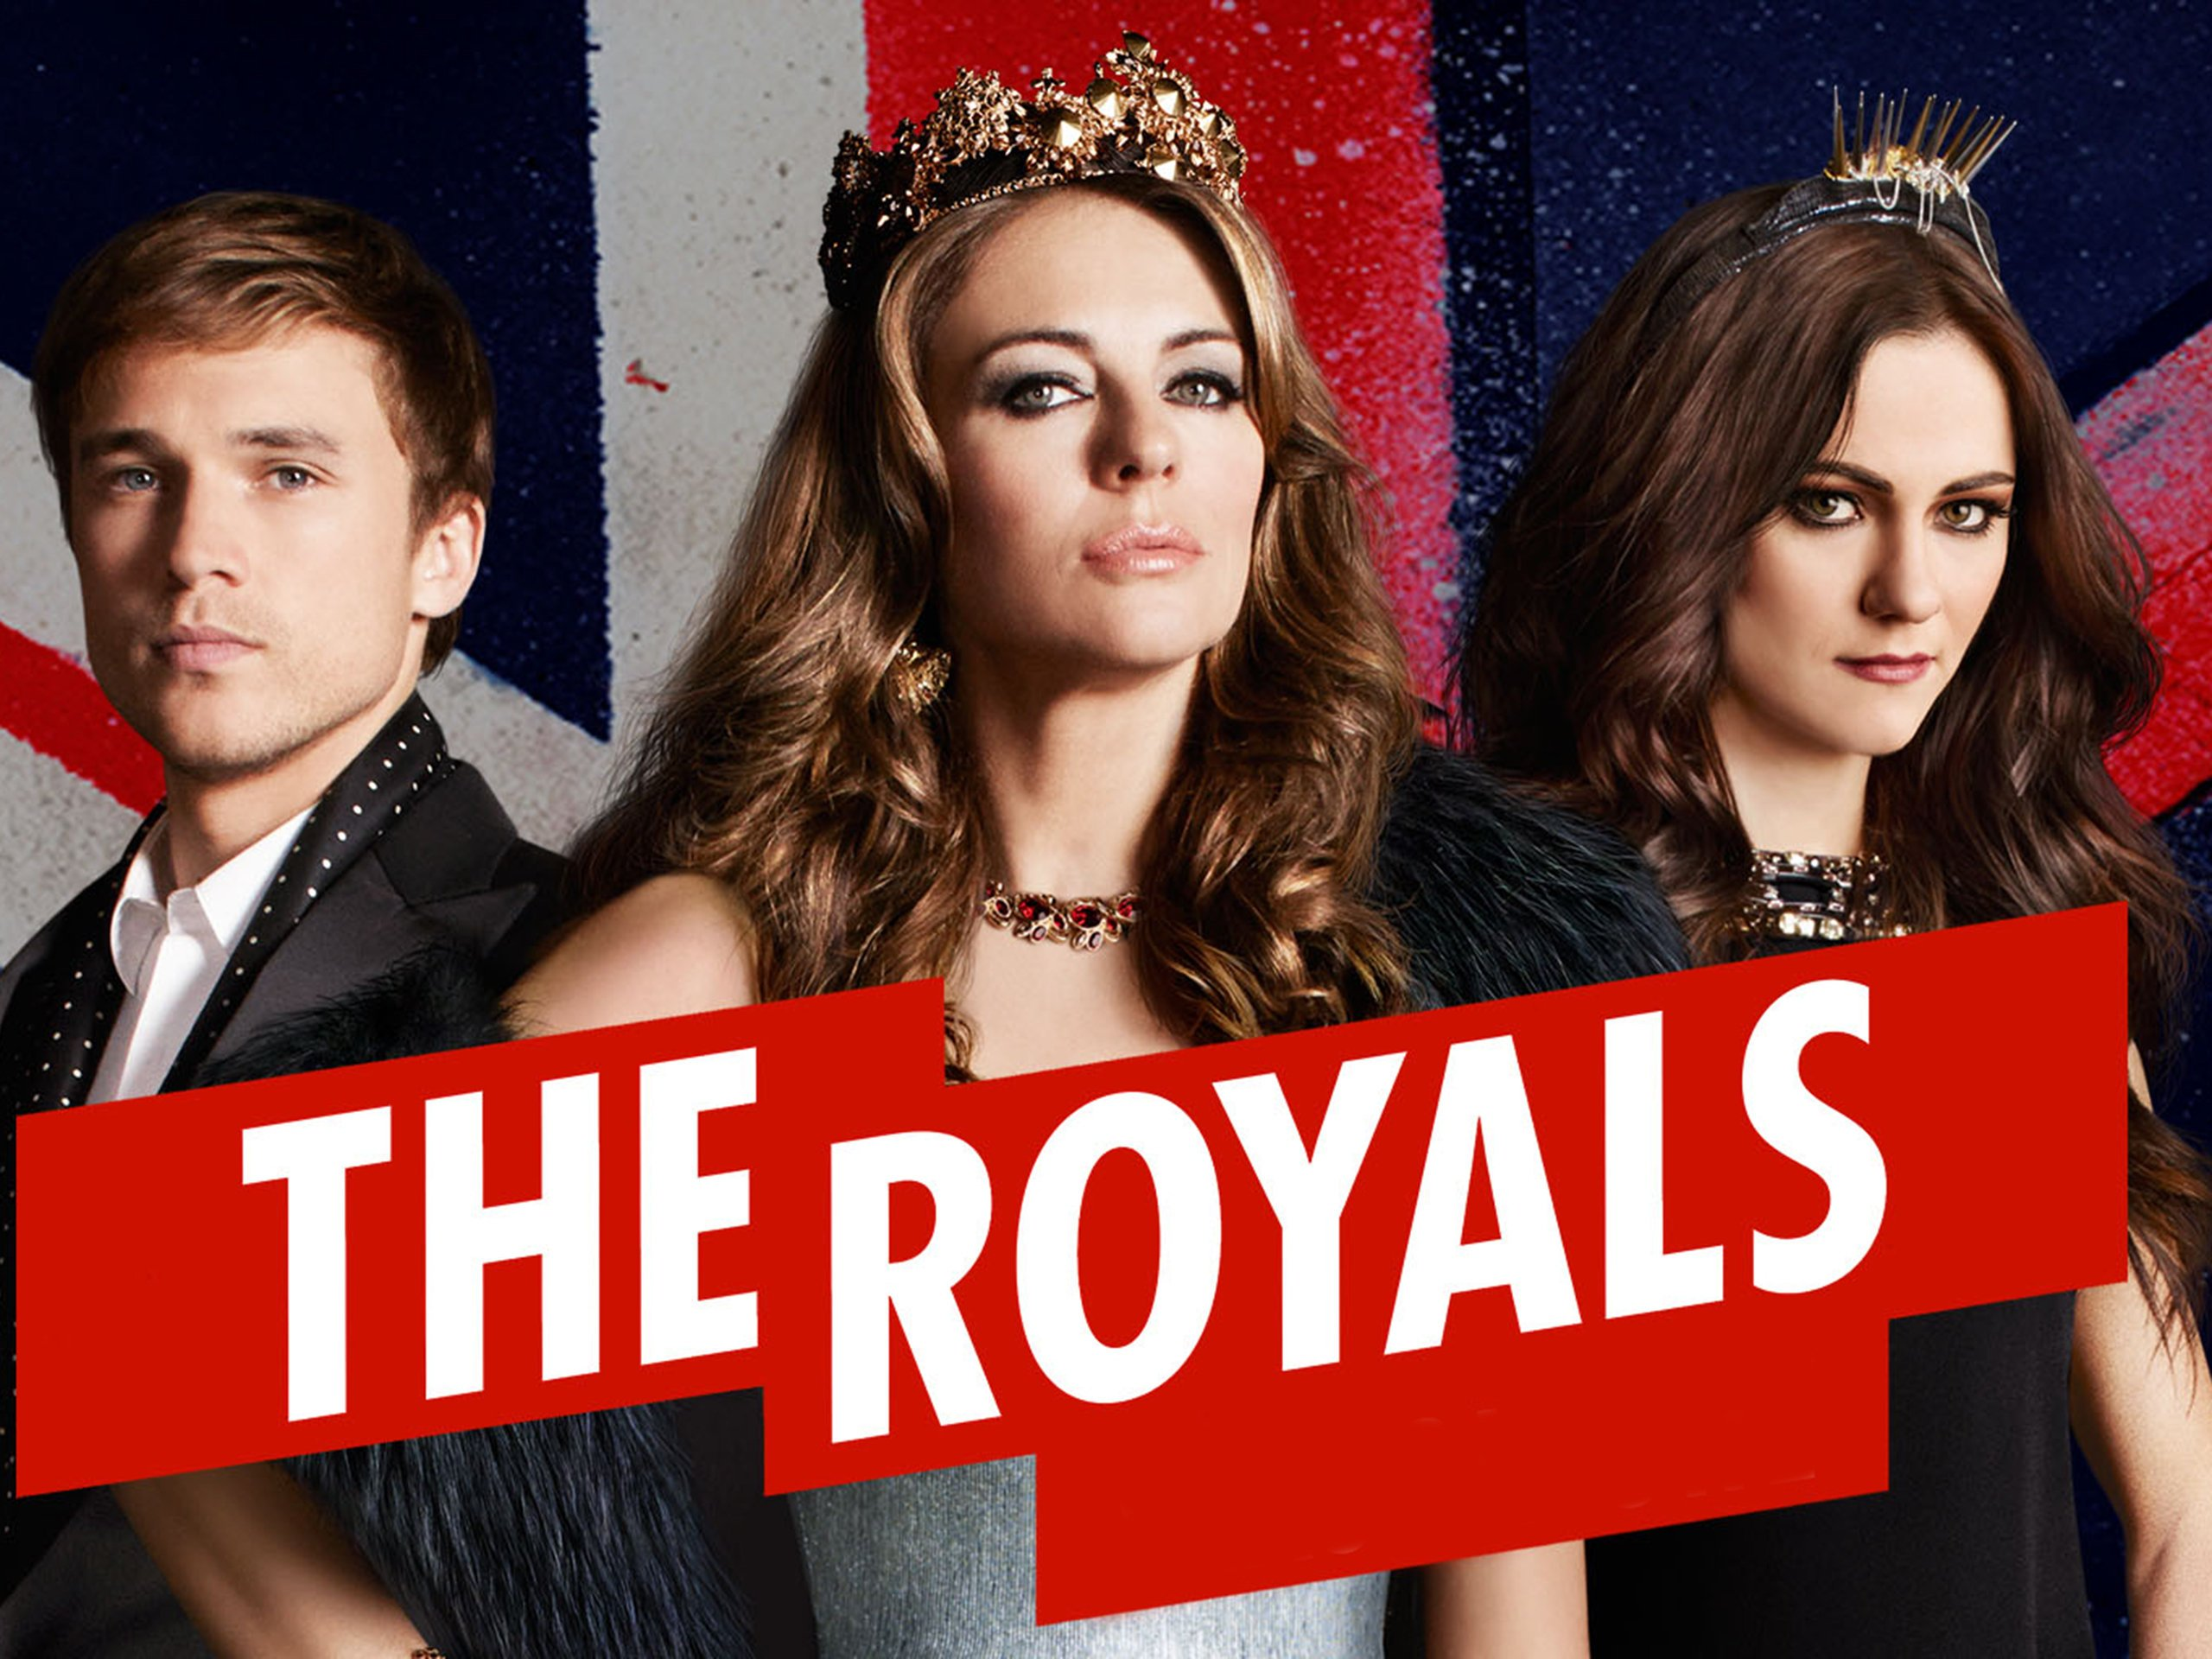 Is the royals on netflix or hulu